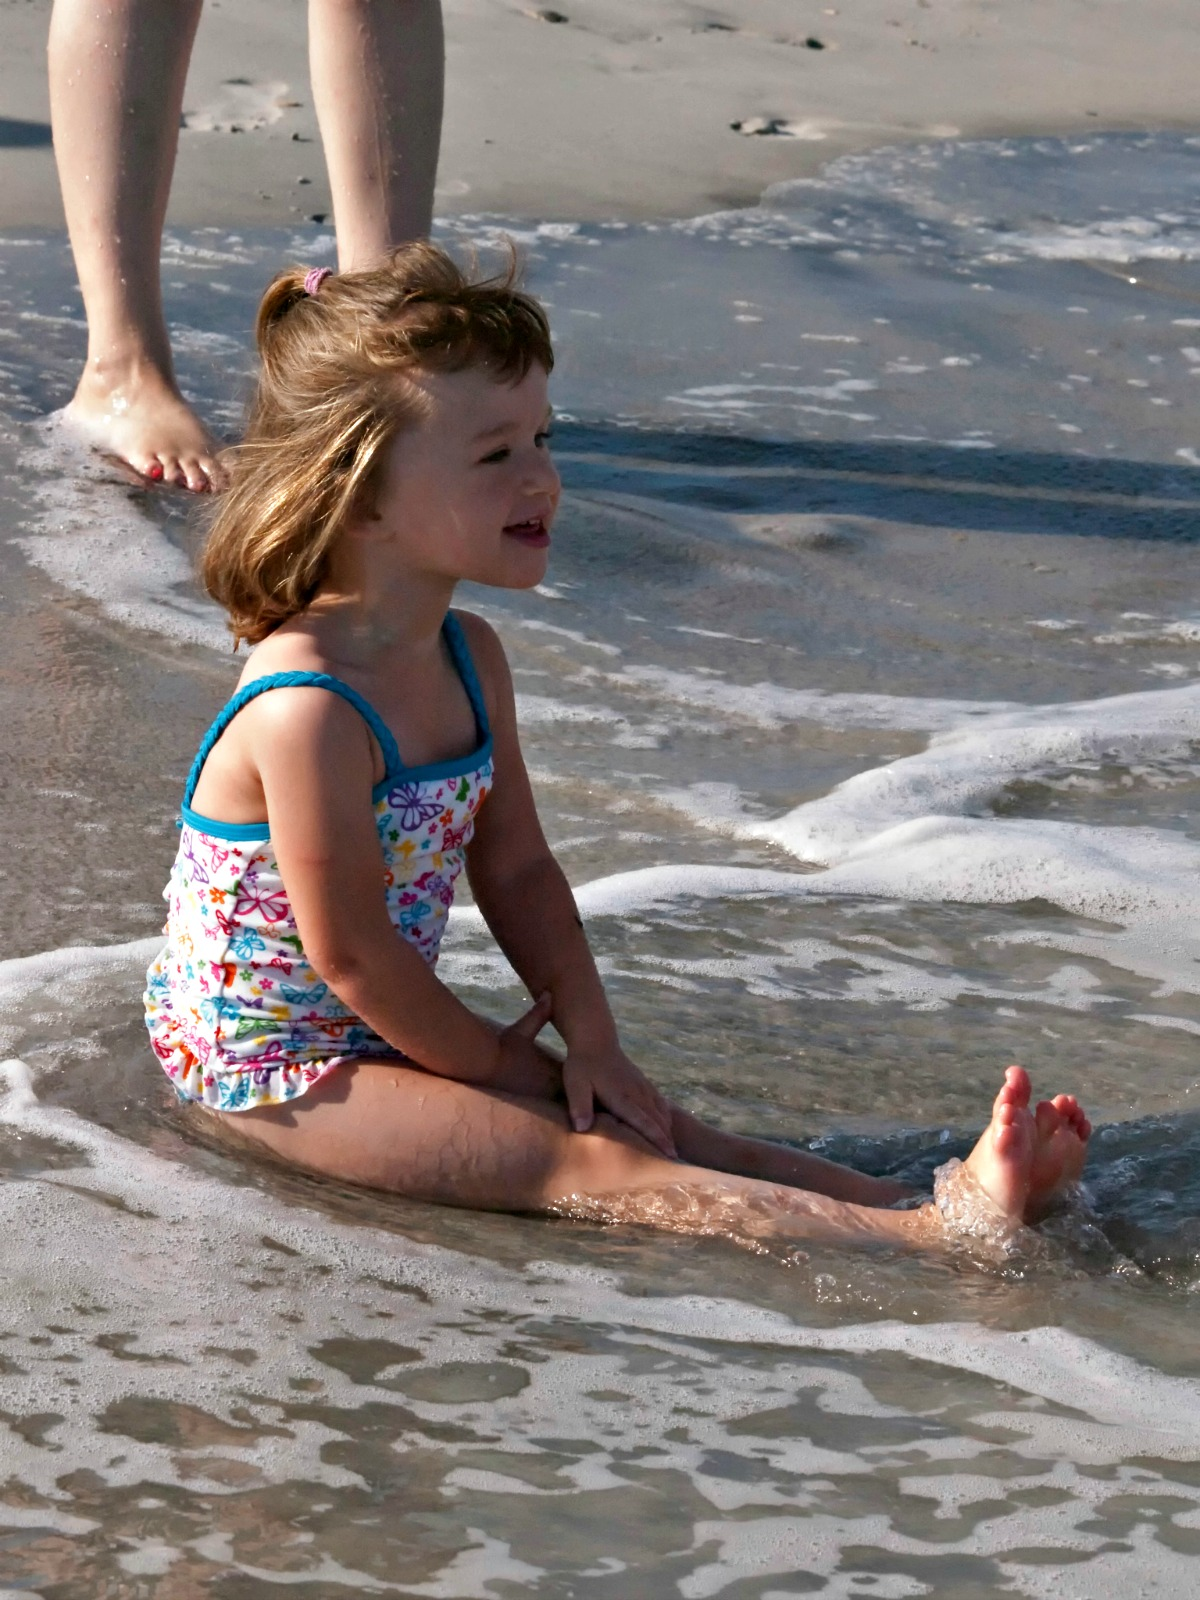 Anyone who's traveled with small children knows a summer vacation isn't the same as before kids. But our family trip to Wilmington, NC, proved lots of fun.